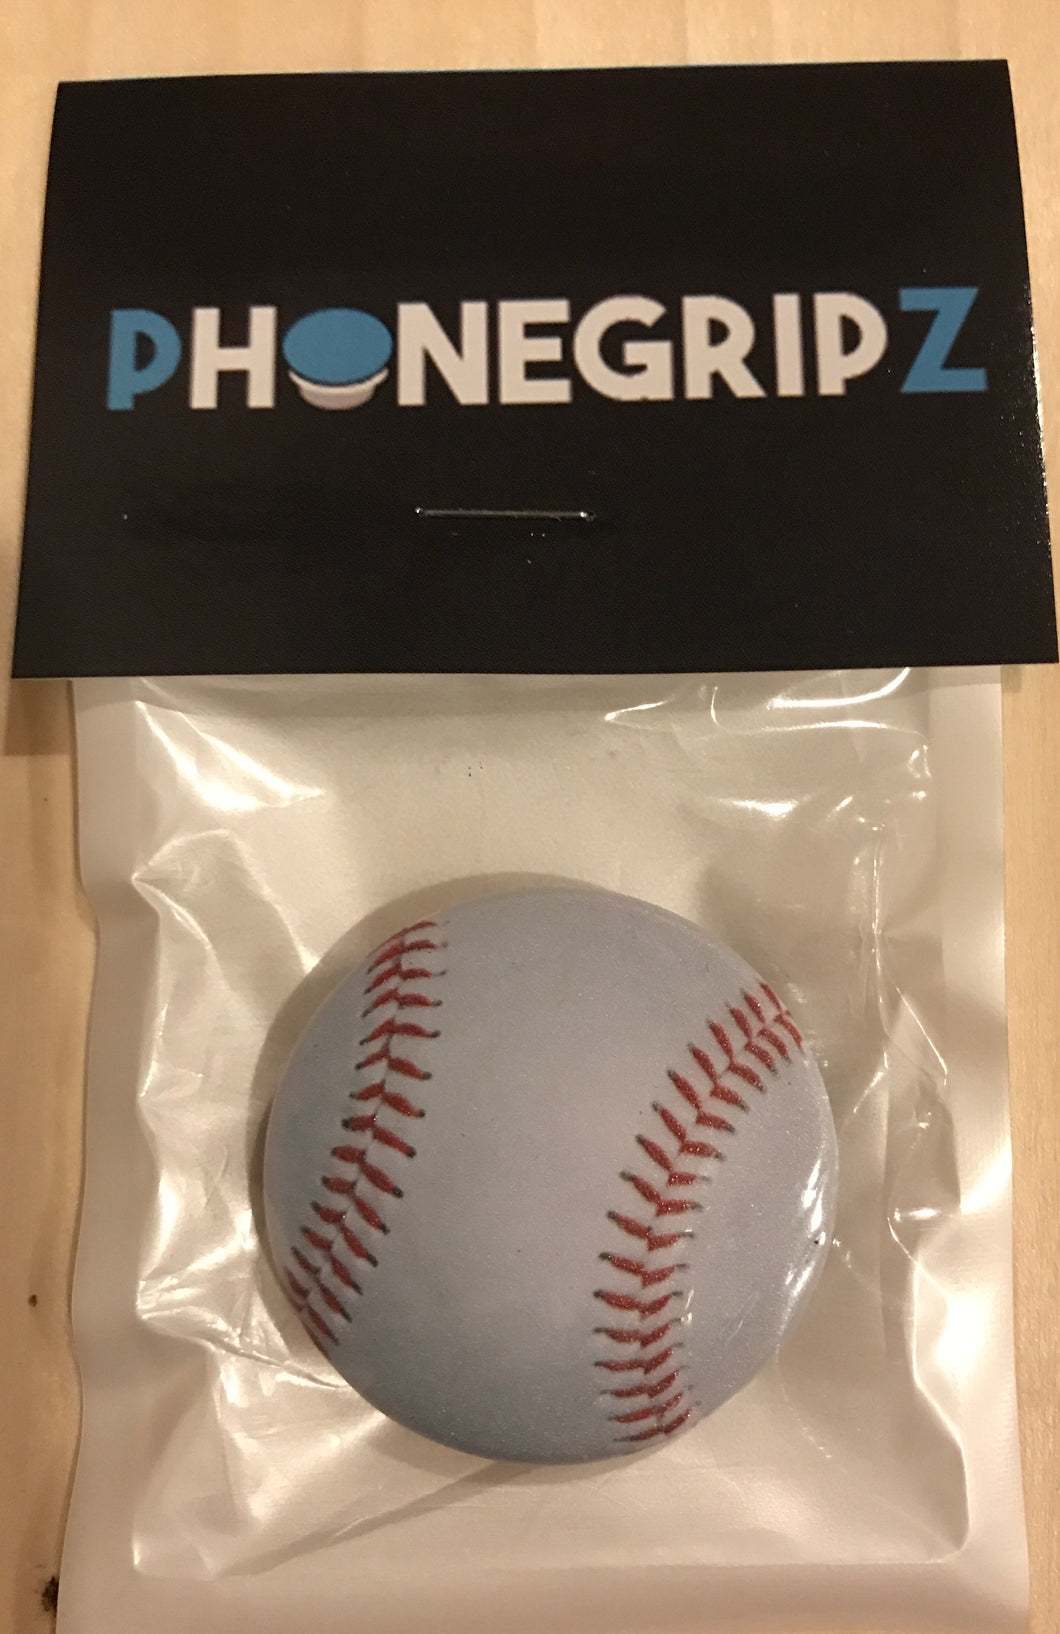 Baseball Universal Phone Grip Pop Out PhoneGripz